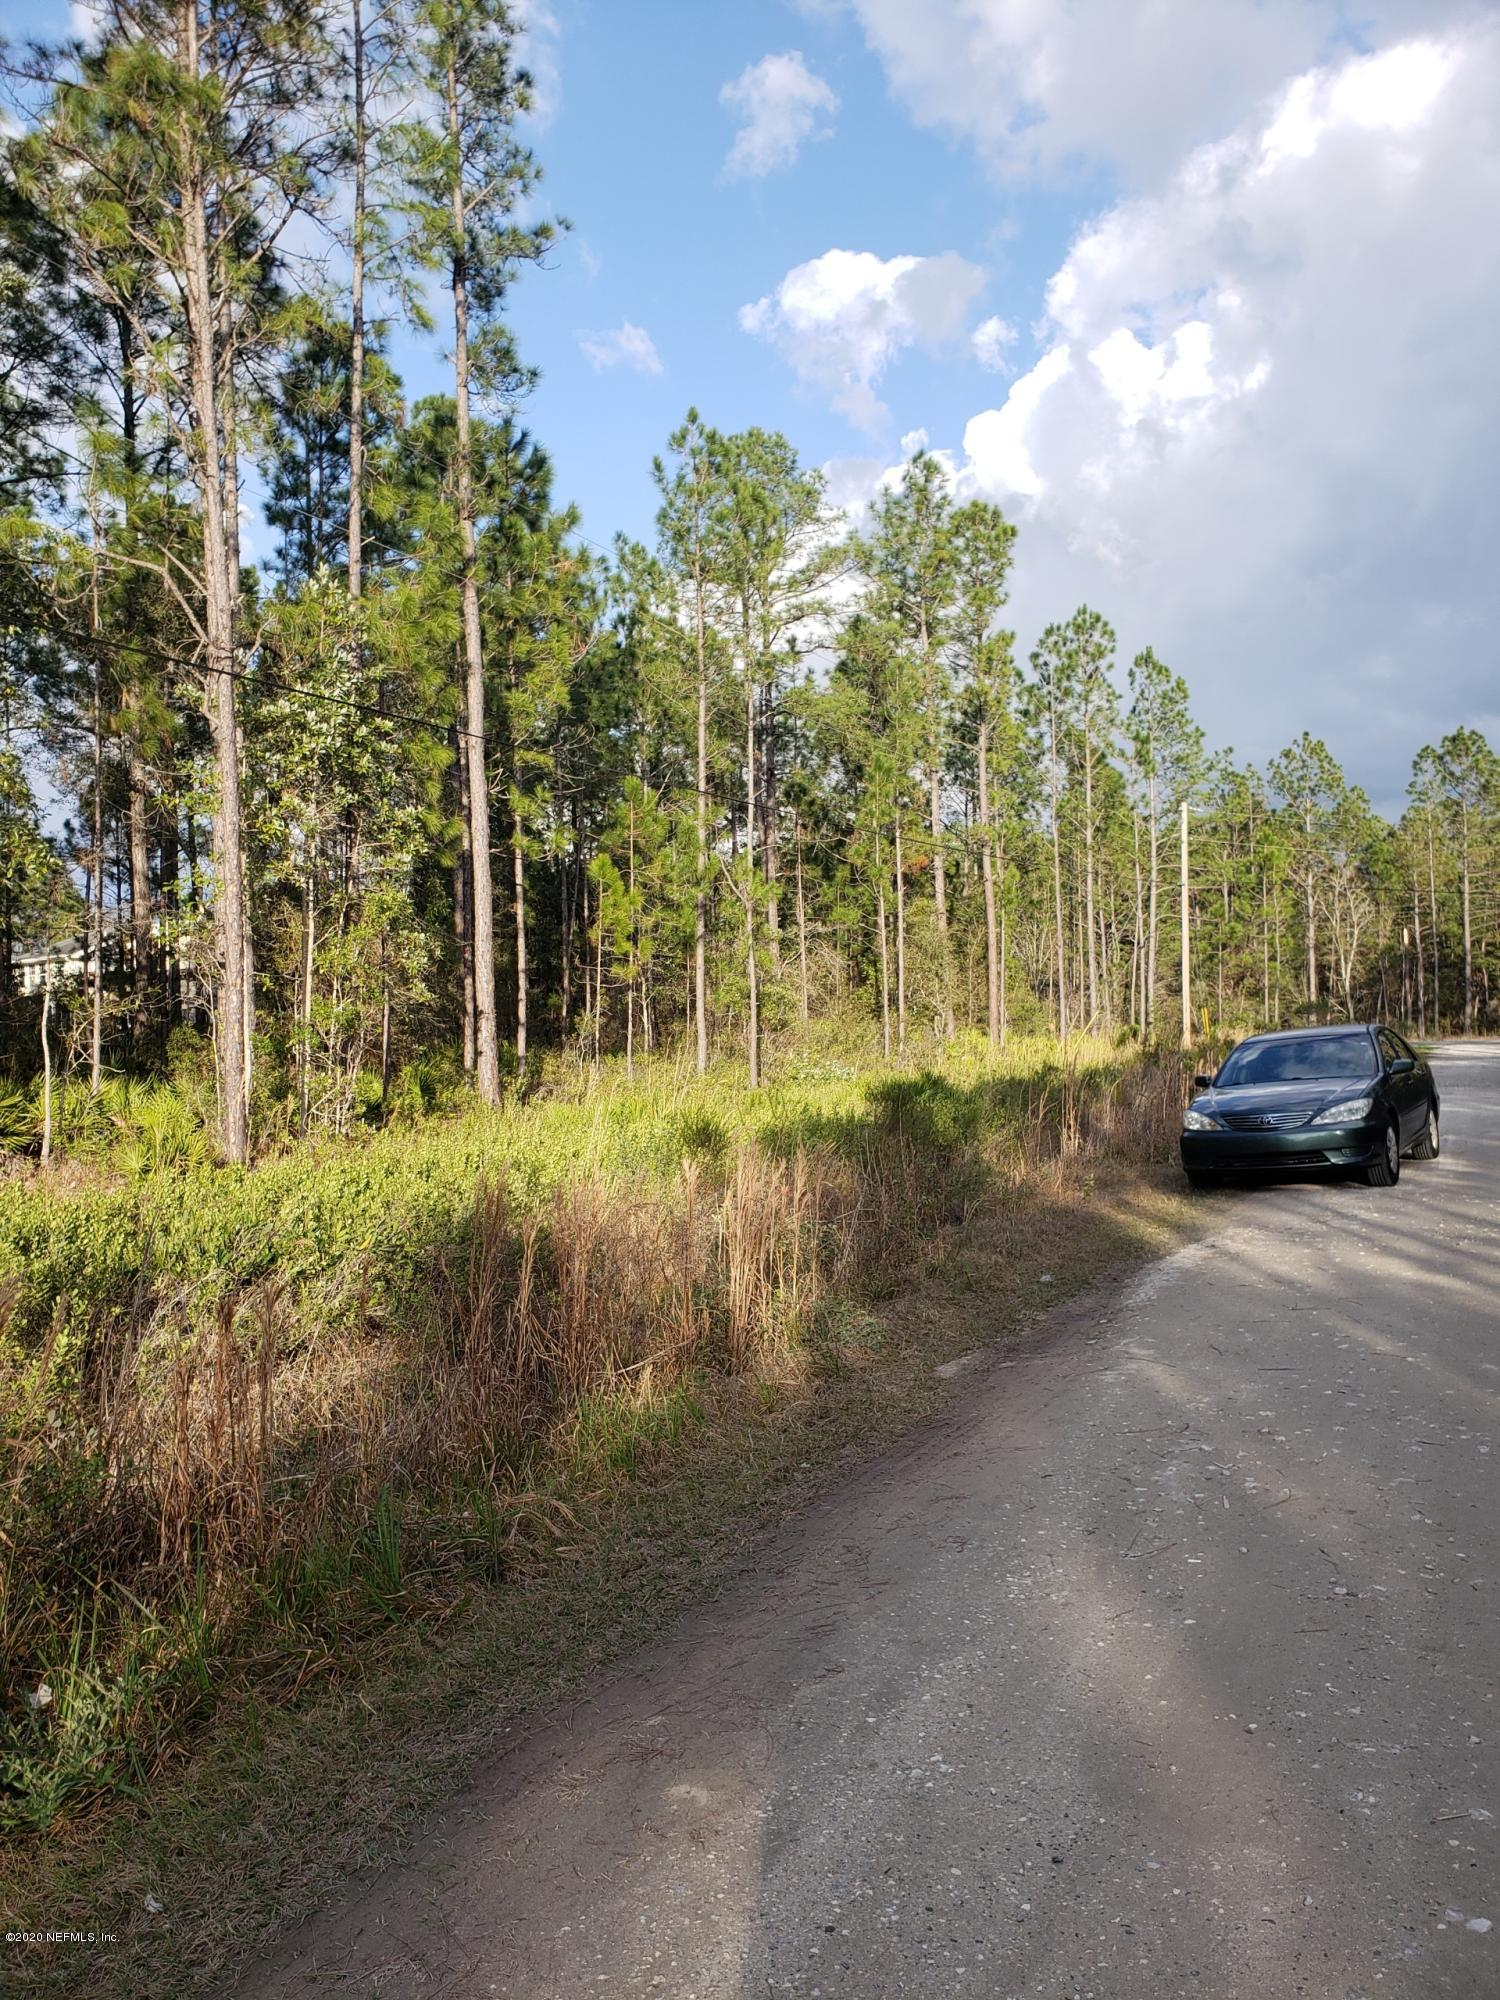 0 COUNTY RD 315, KEYSTONE HEIGHTS, FLORIDA 32656, ,Vacant land,For sale,COUNTY RD 315,1043724